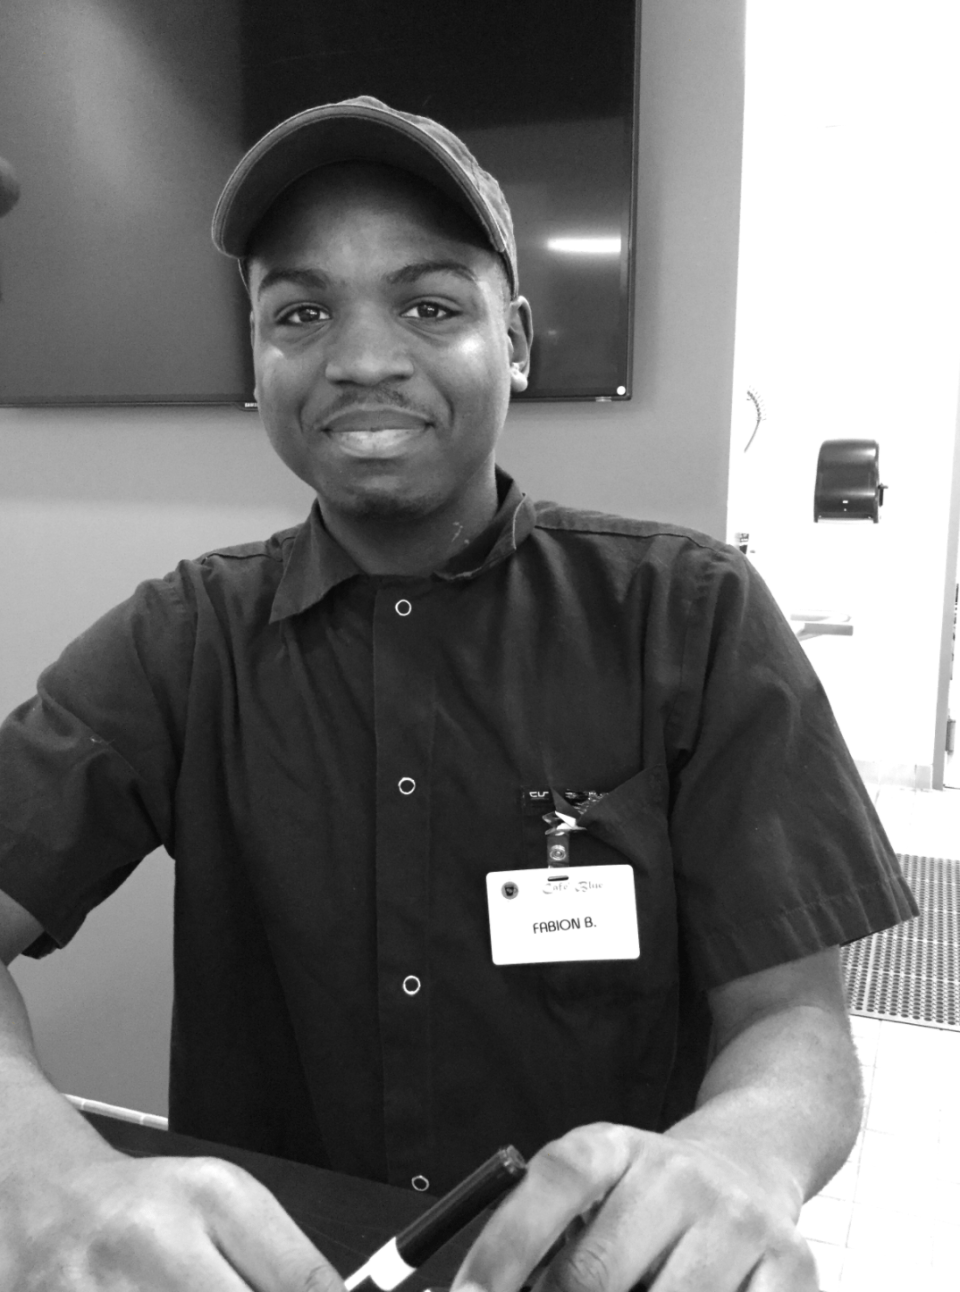 Student photograph of peer in the cafe, Inspiring and Representing Occupational Pride Through Photography, 2020